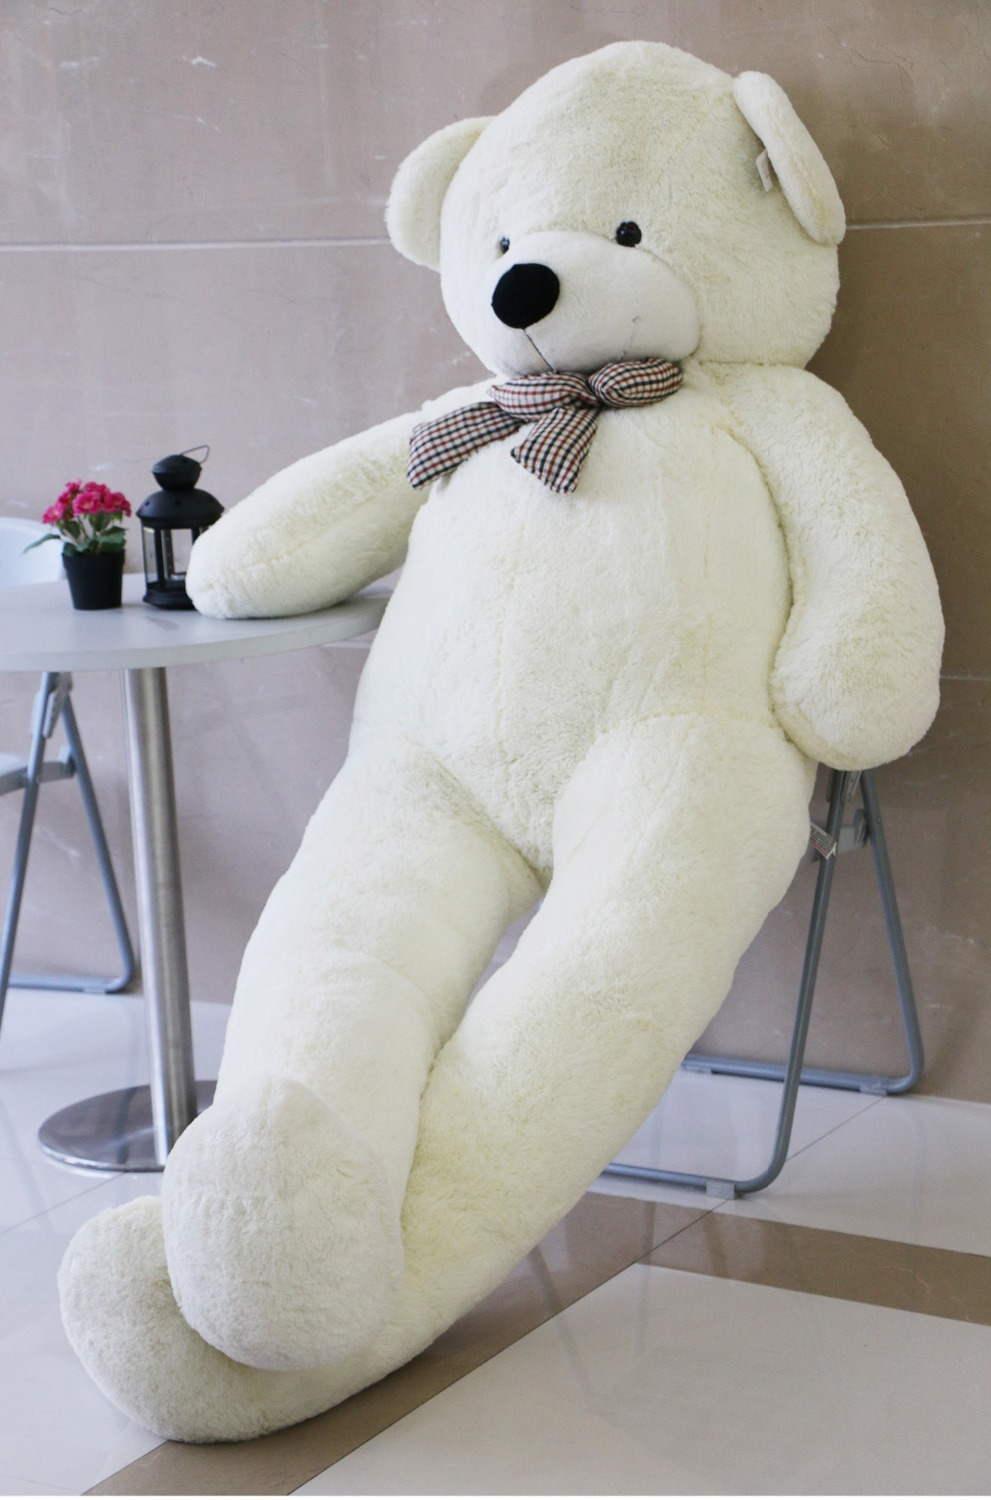 "Joyfay 91"" 230cm White Giant Teddy Bear 2.3m Huge Stuffed Plush Teddy Bear Big Soft Toy Gift for Birthday Valentine Anniversary(China (Mainland))"